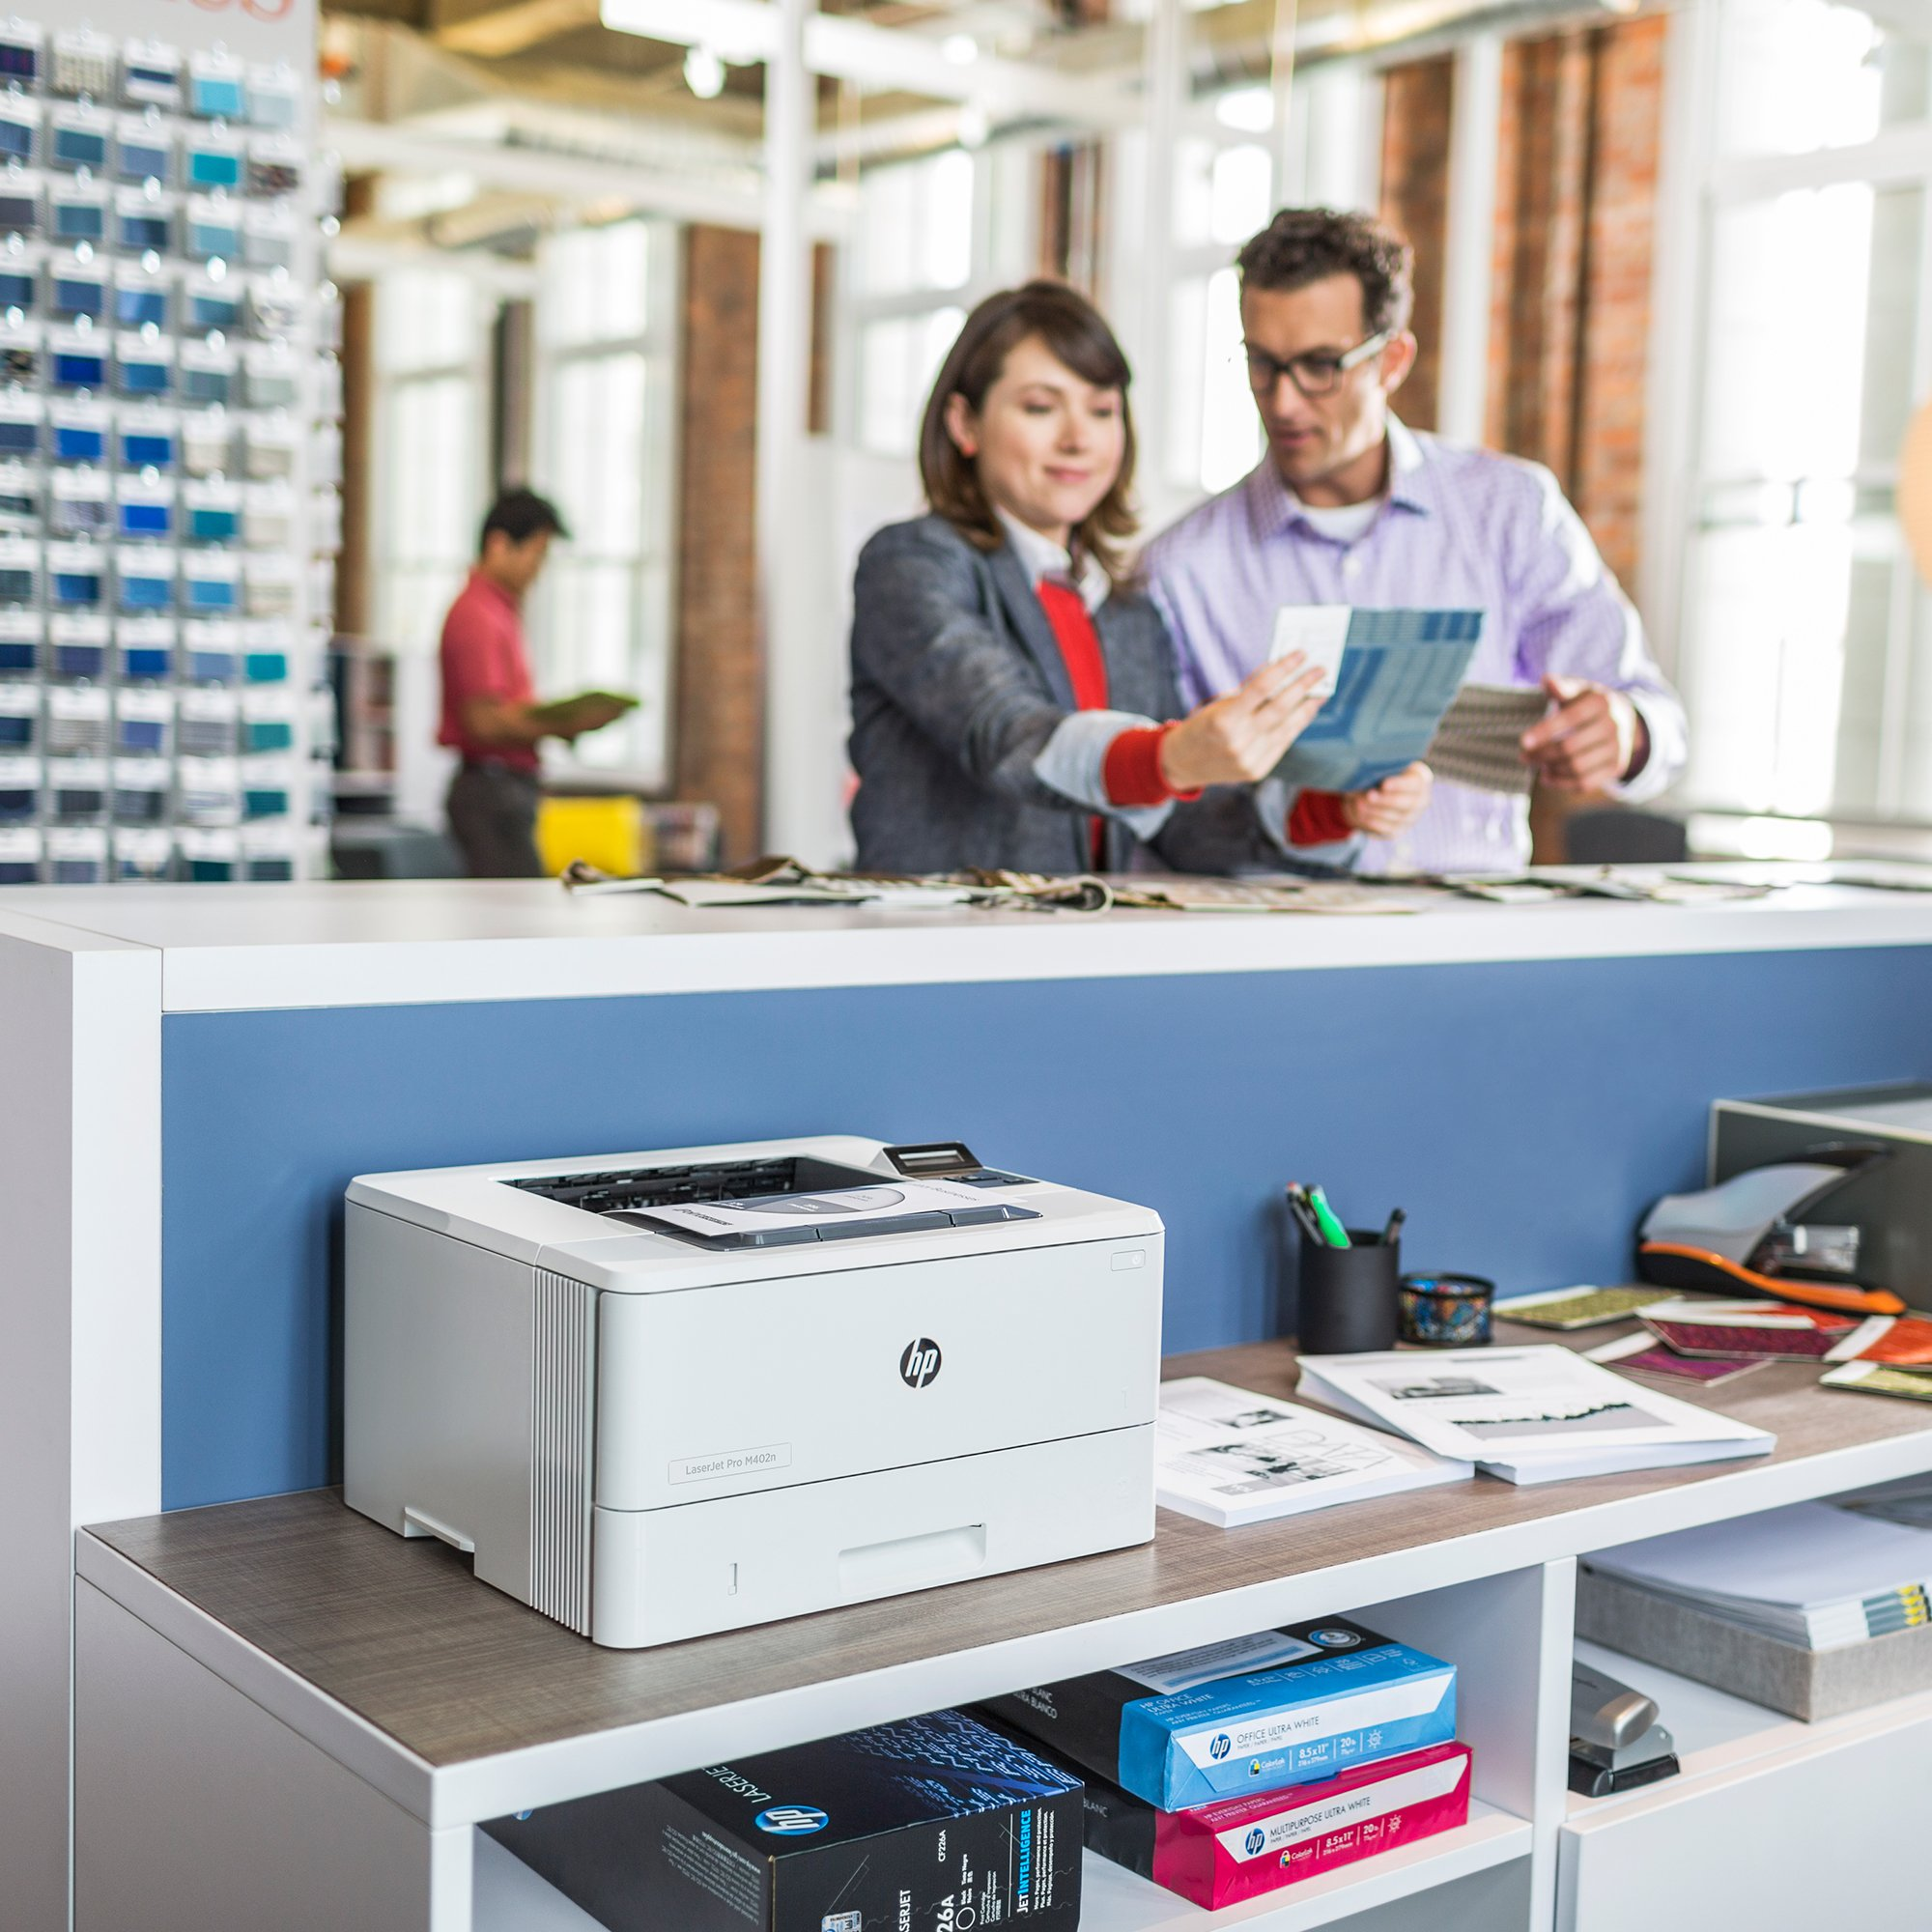 HP LaserJet Pro M402n Laser Printer with Built-in Ethernet, Amazon Dash Replenishment ready (C5F93A) by HP (Image #9)